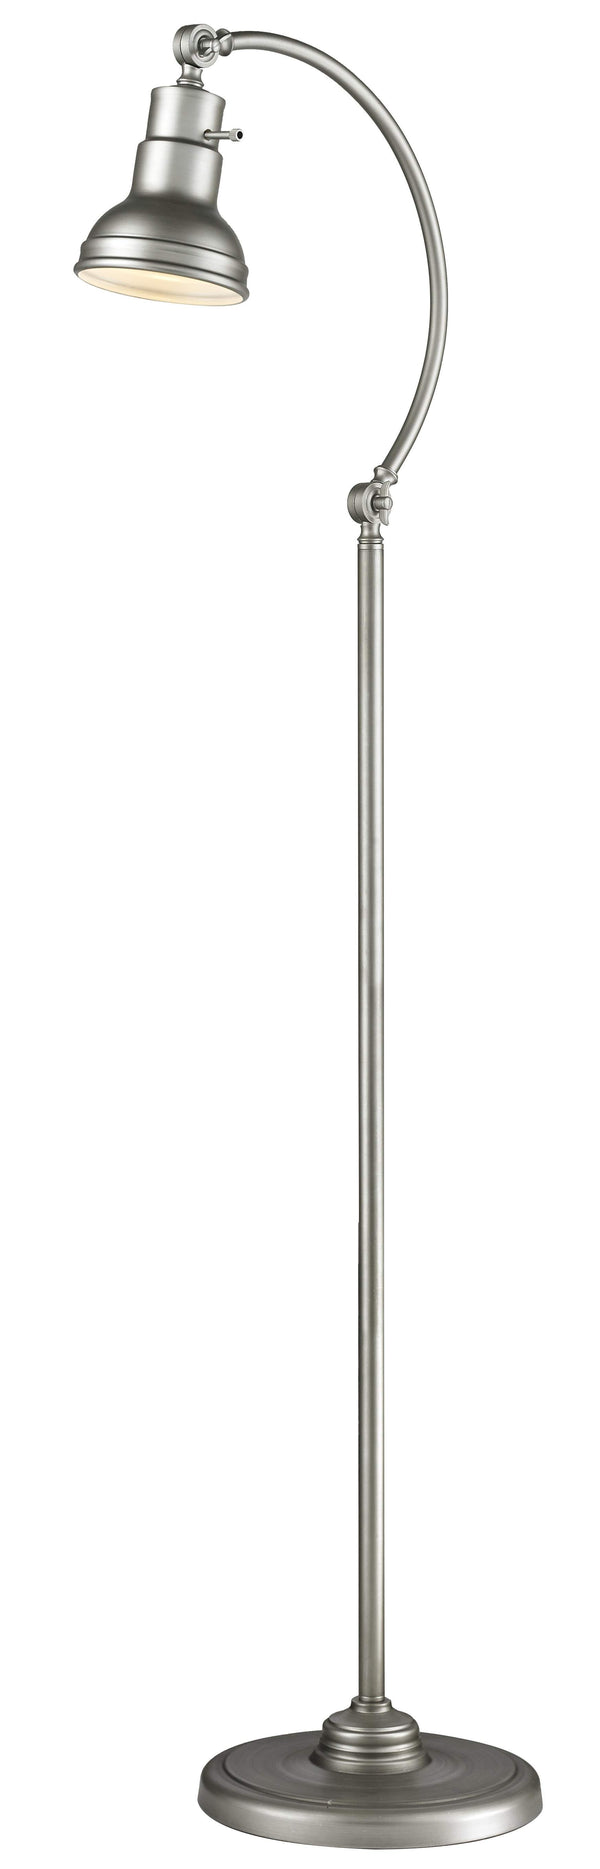 New zlite Product  Ramsay Collection 1 Light Floor Lamp in Burnished Silver Finish Sold by VaasuHomes